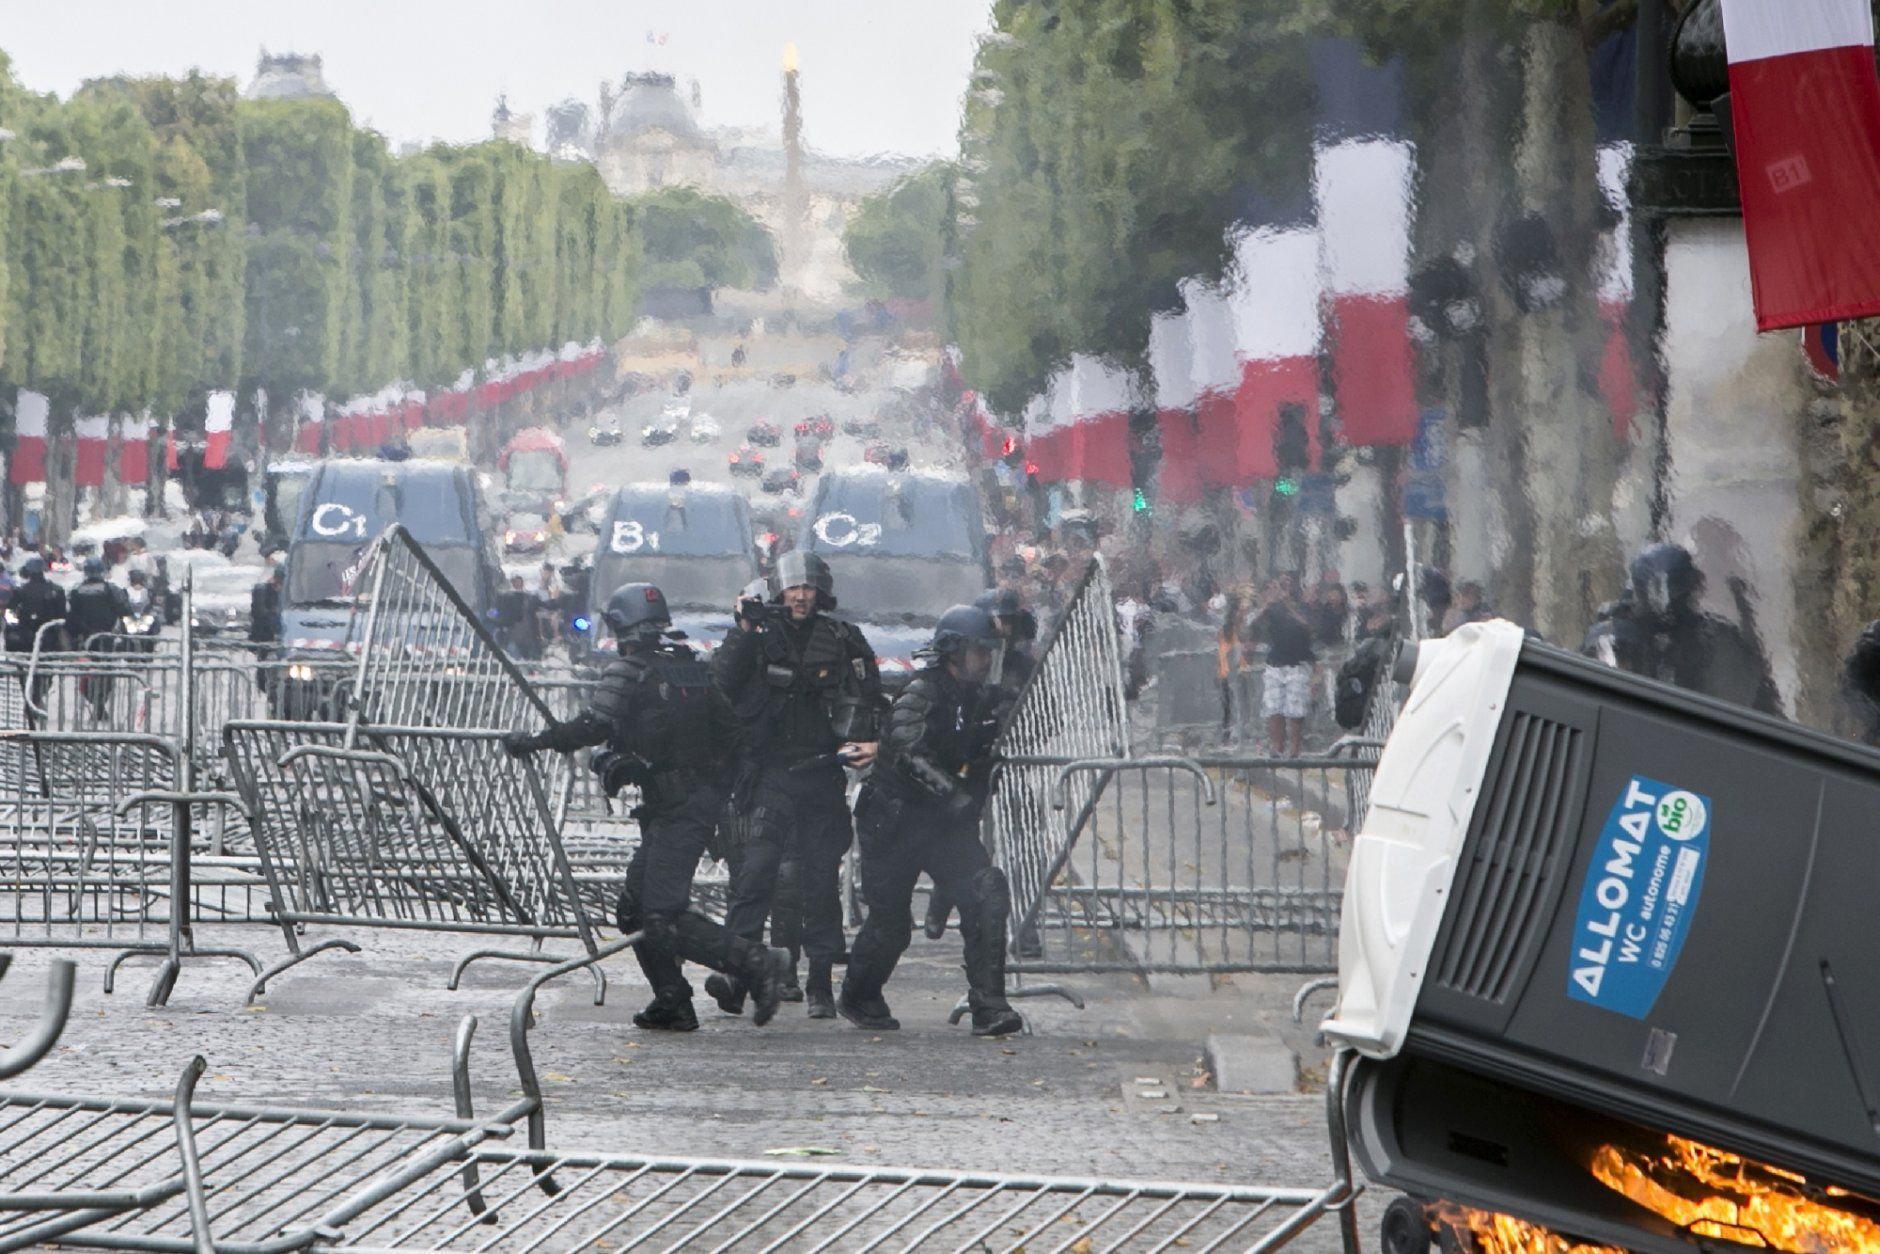 Riot police officers remove barricades that were uses as security barriers for Bastille Day parade on the Champs-Elysees avenue after scuffles with demonstrators, Sunday, July 14, 2019 in Paris. (AP Photo/Rafael Yaghobzadeh)